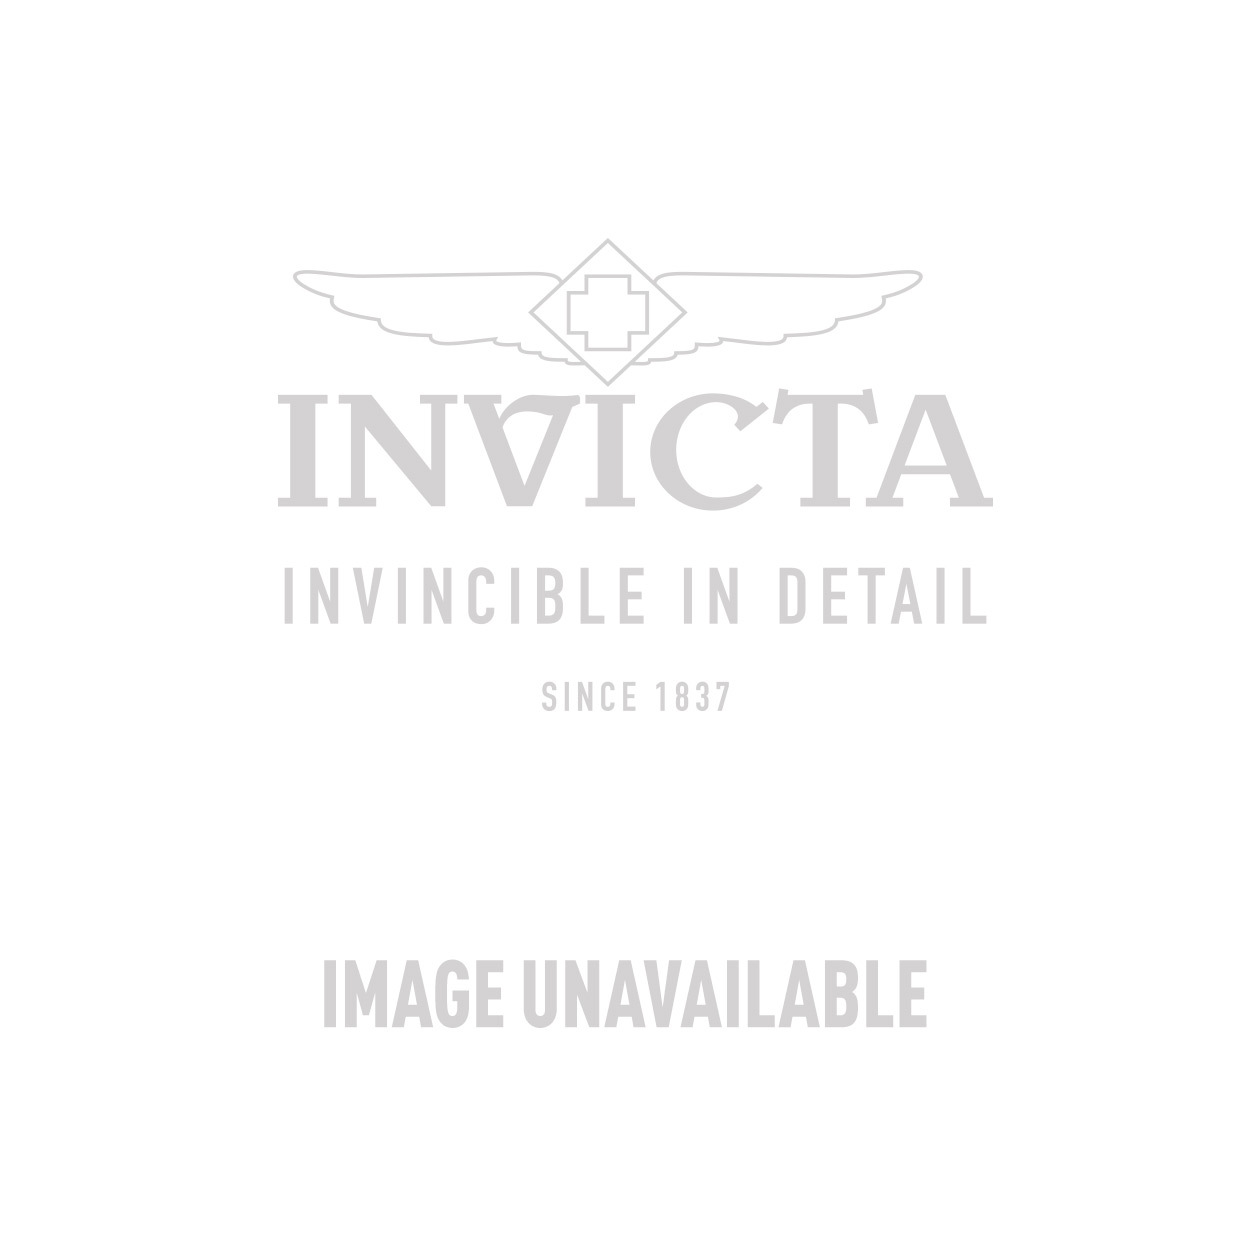 Invicta Lupah Swiss Movement Quartz Watch - Stainless Steel case with White tone Leather band - Model 0051